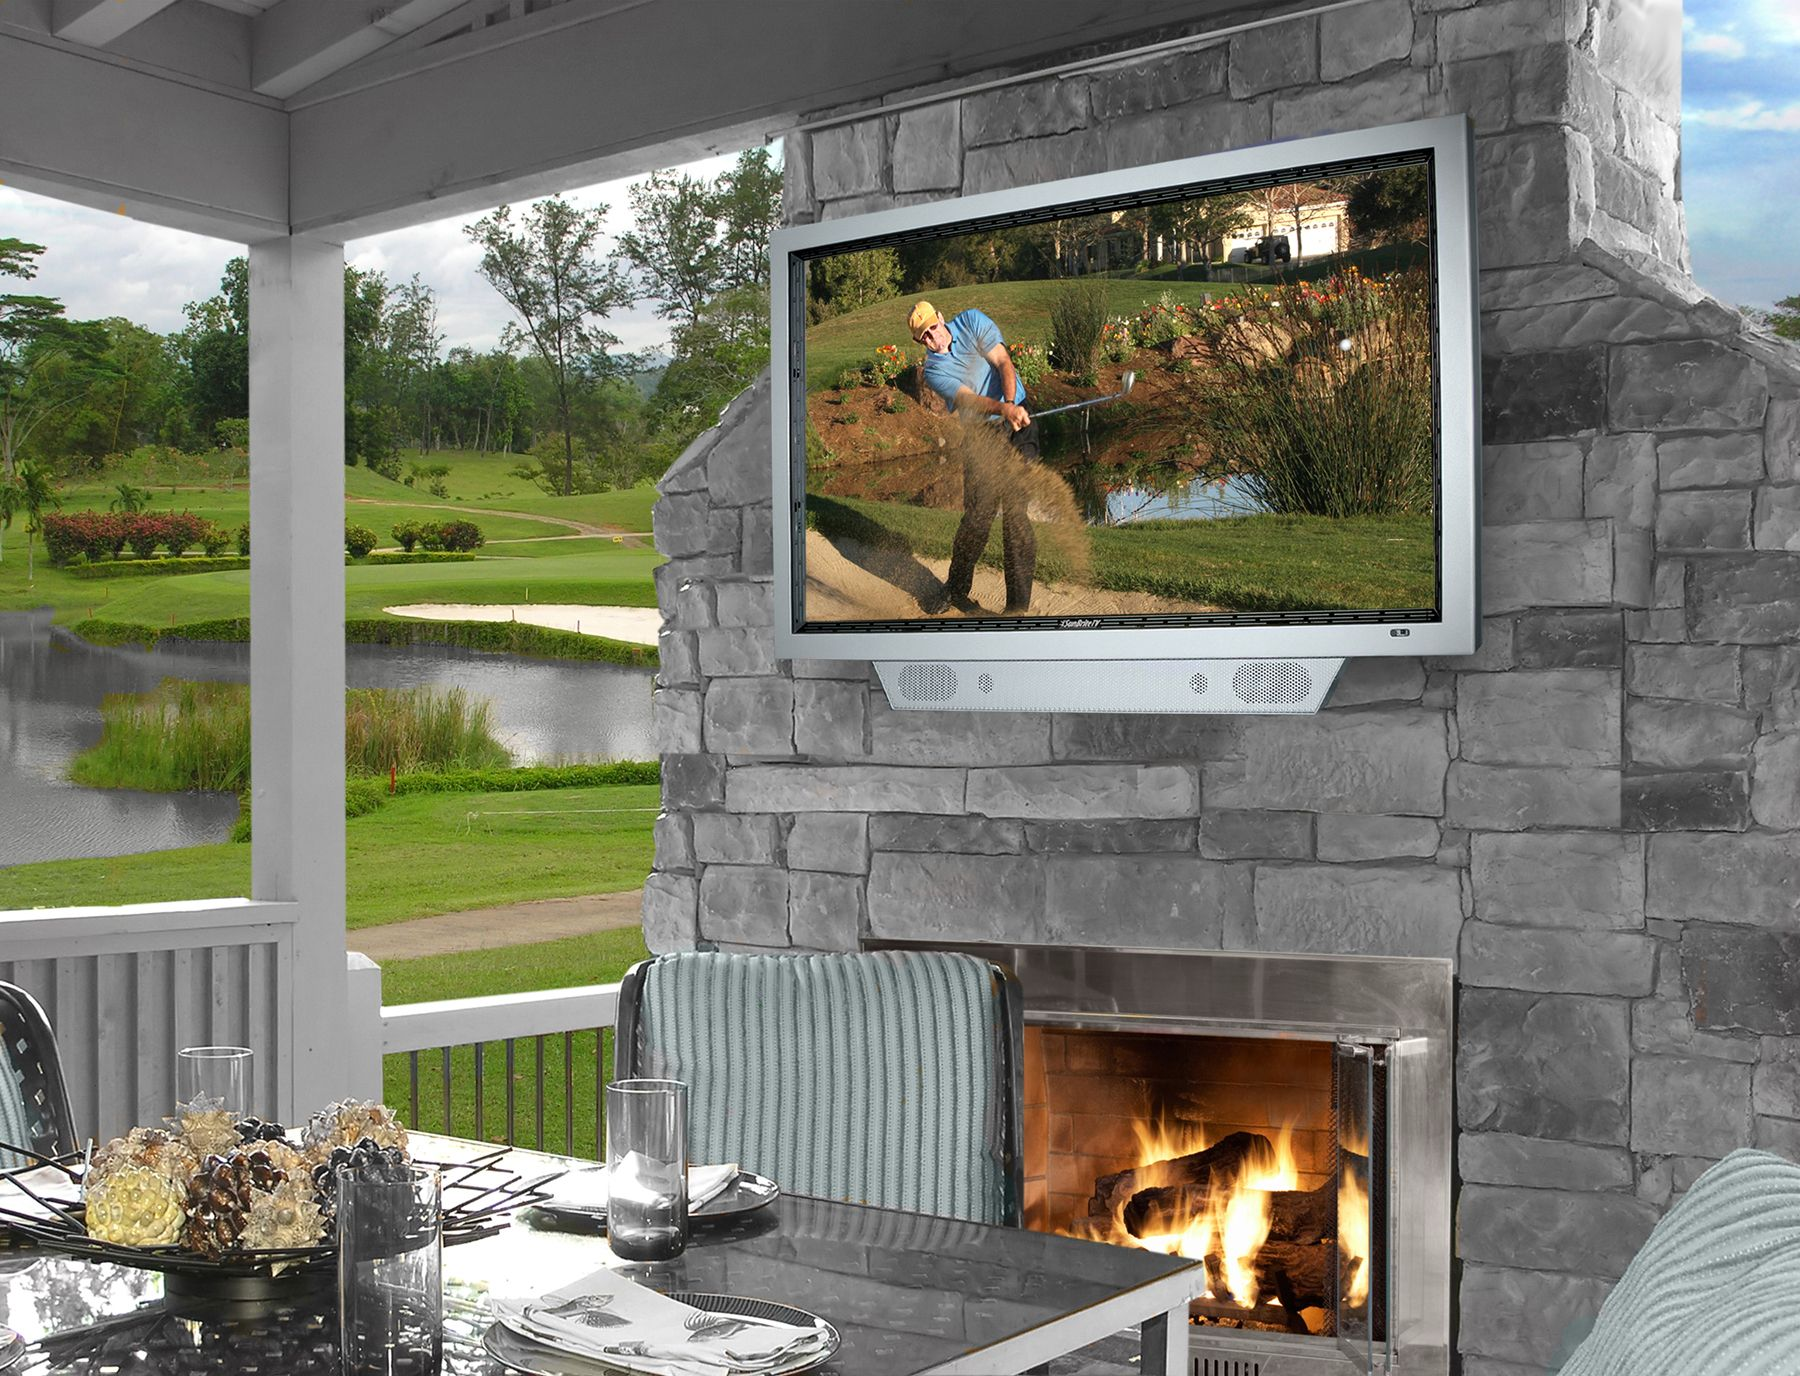 35 Outdoor Living Space For Your Home - The WoW Style on Outdoor Living Patio id=72044